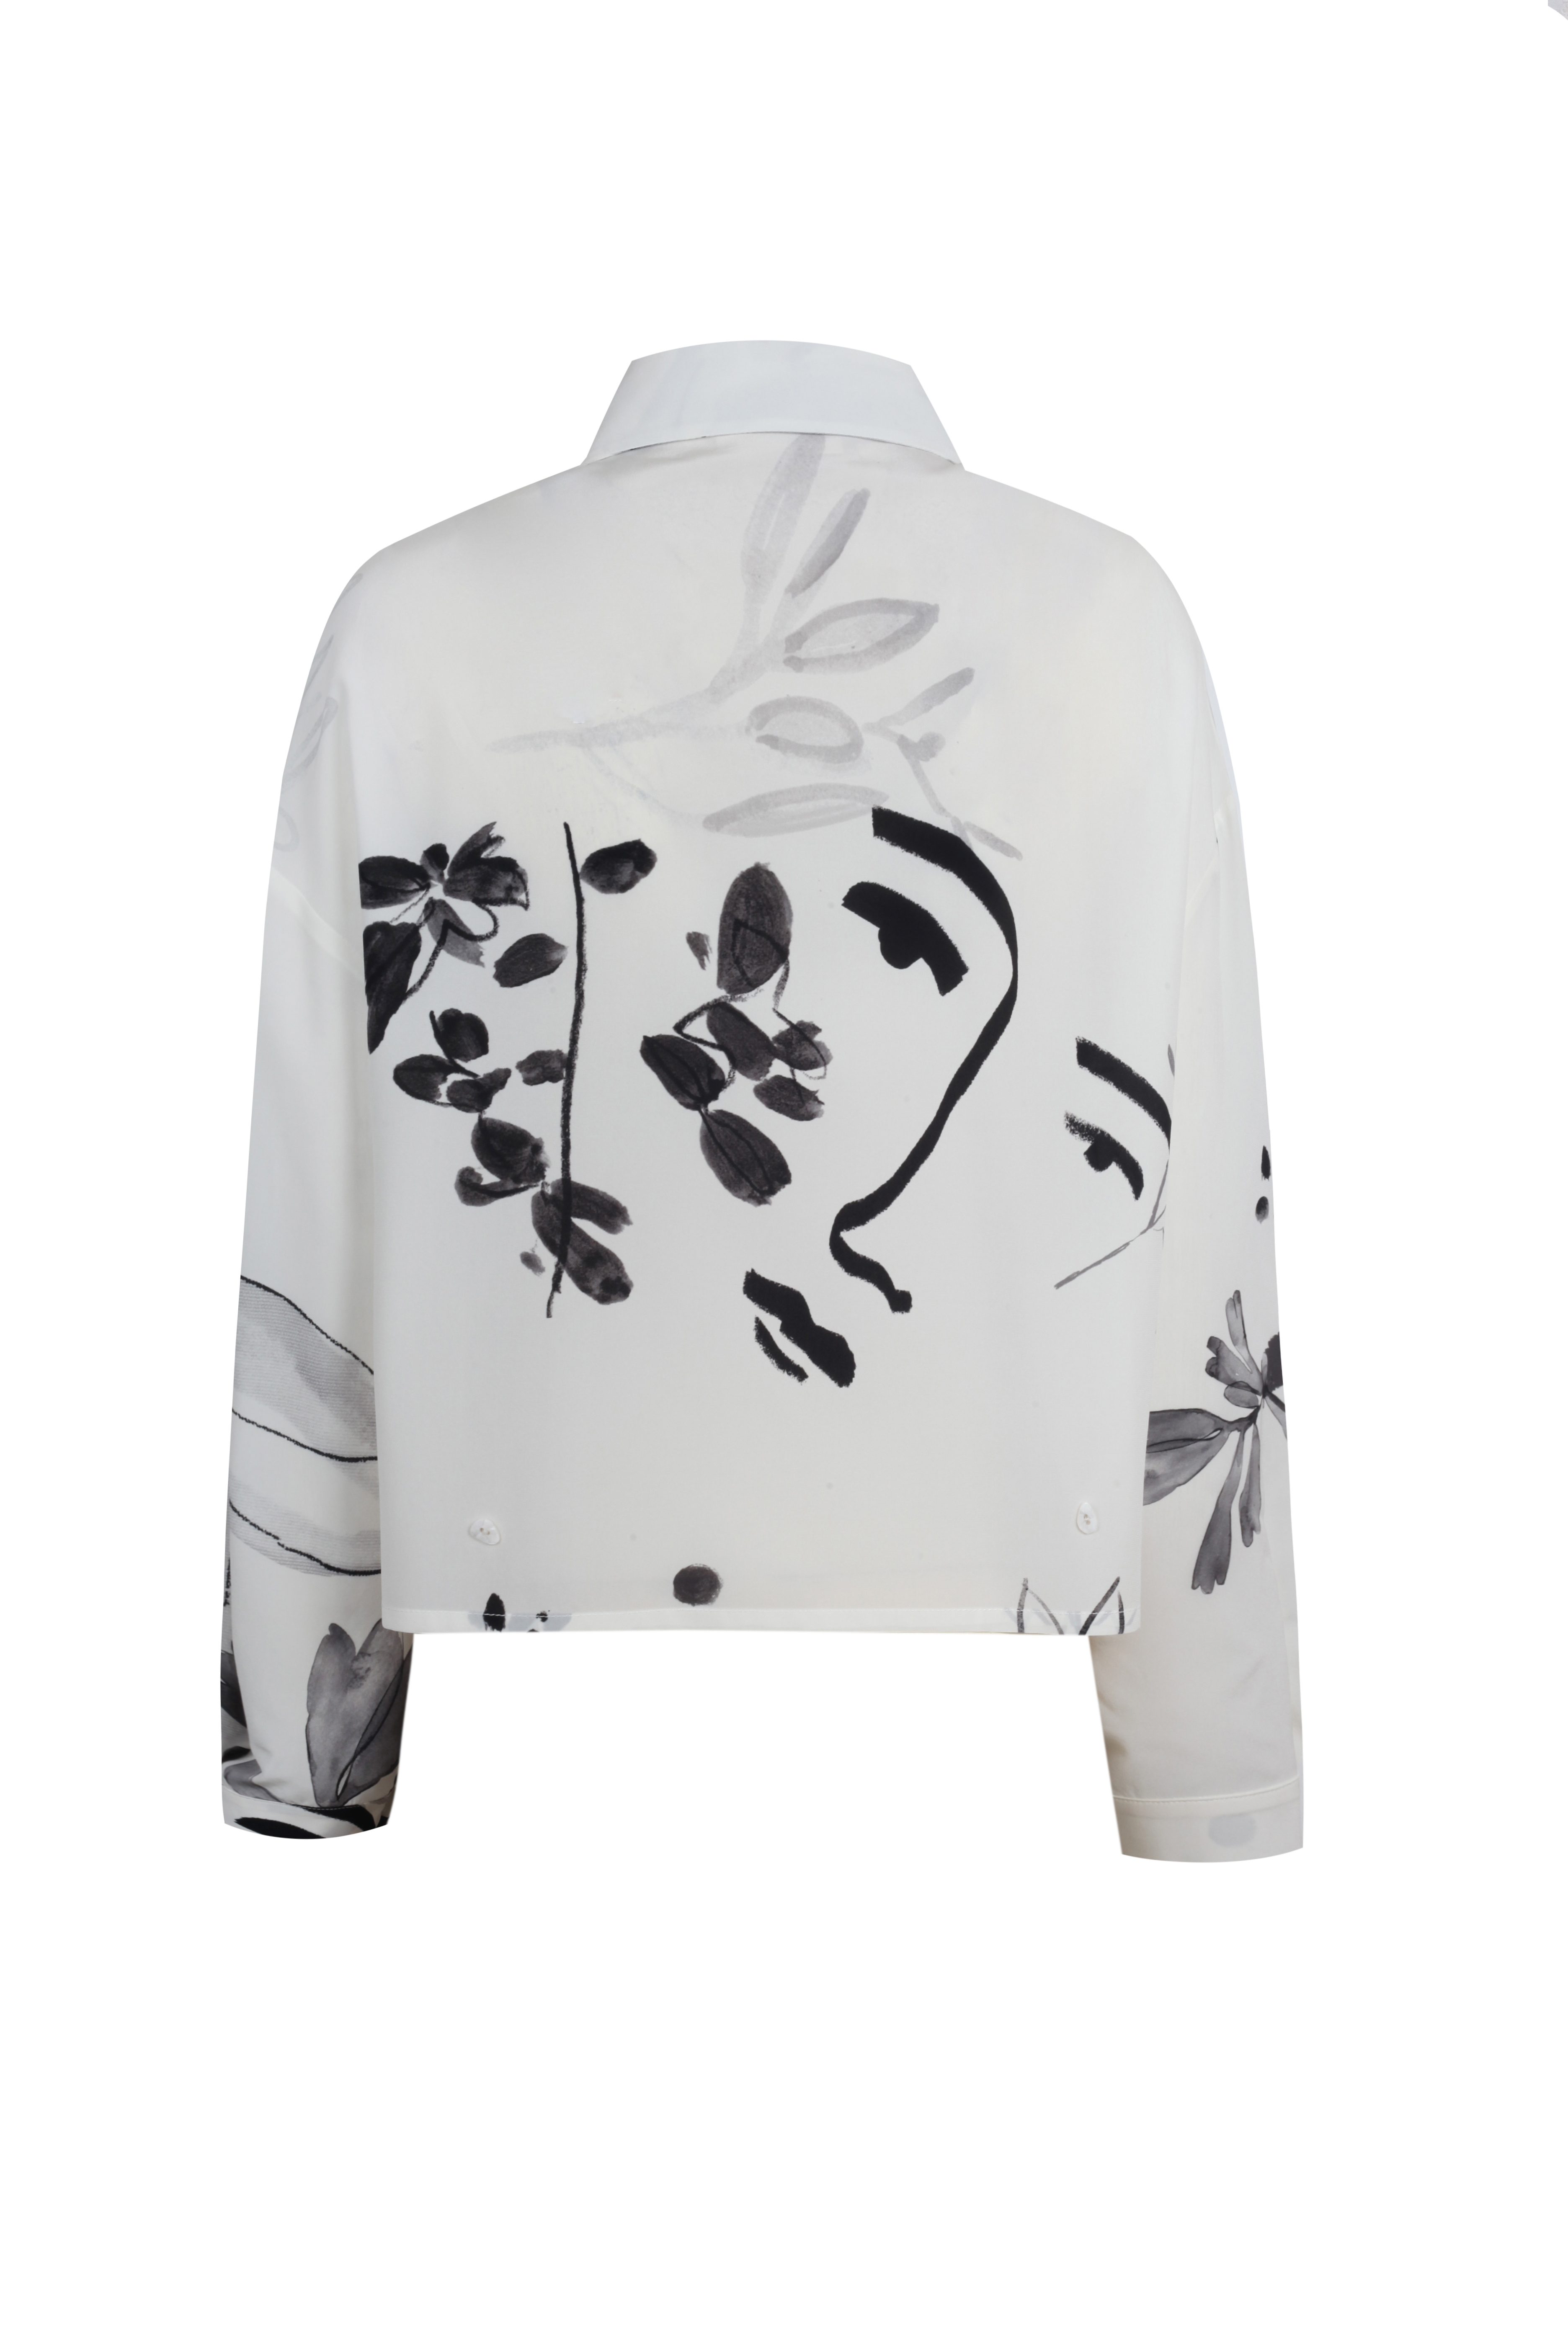 Mellow Shirt - White by Laika on curated-crowd.com